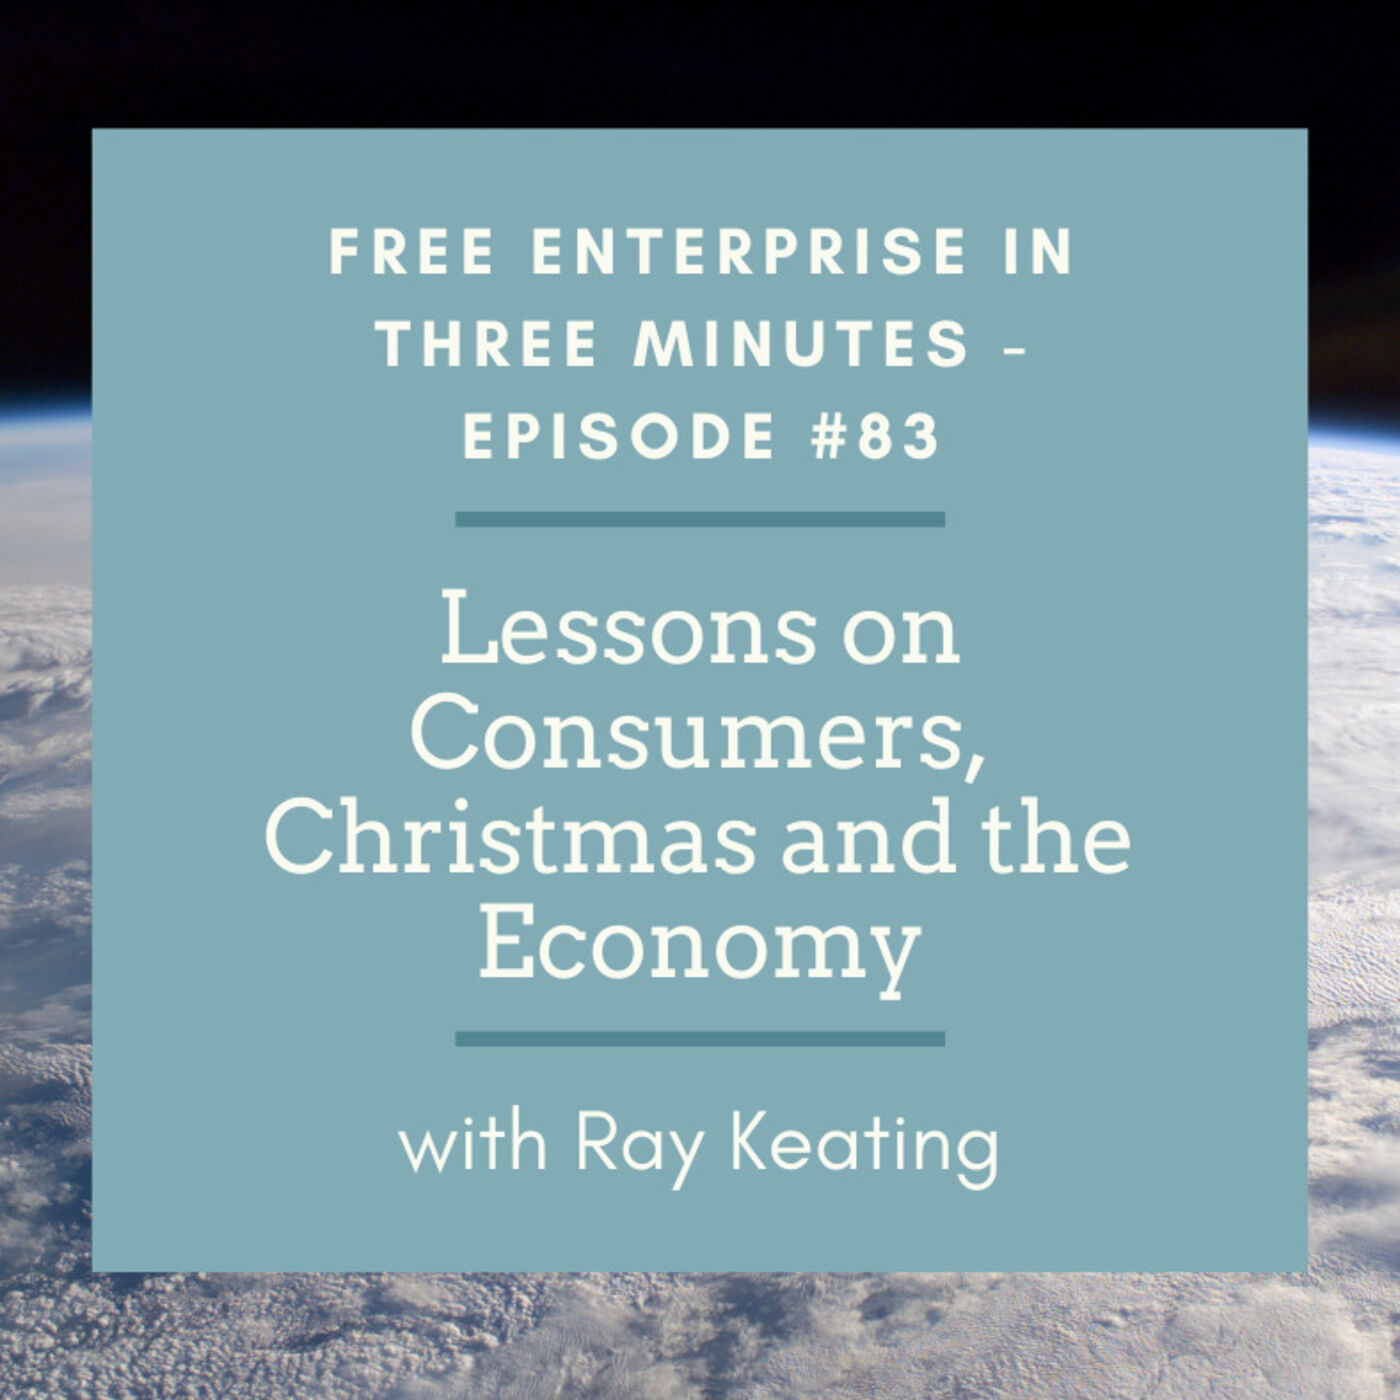 Episode #83: Lessons on Consumers, Christmas and the Economy